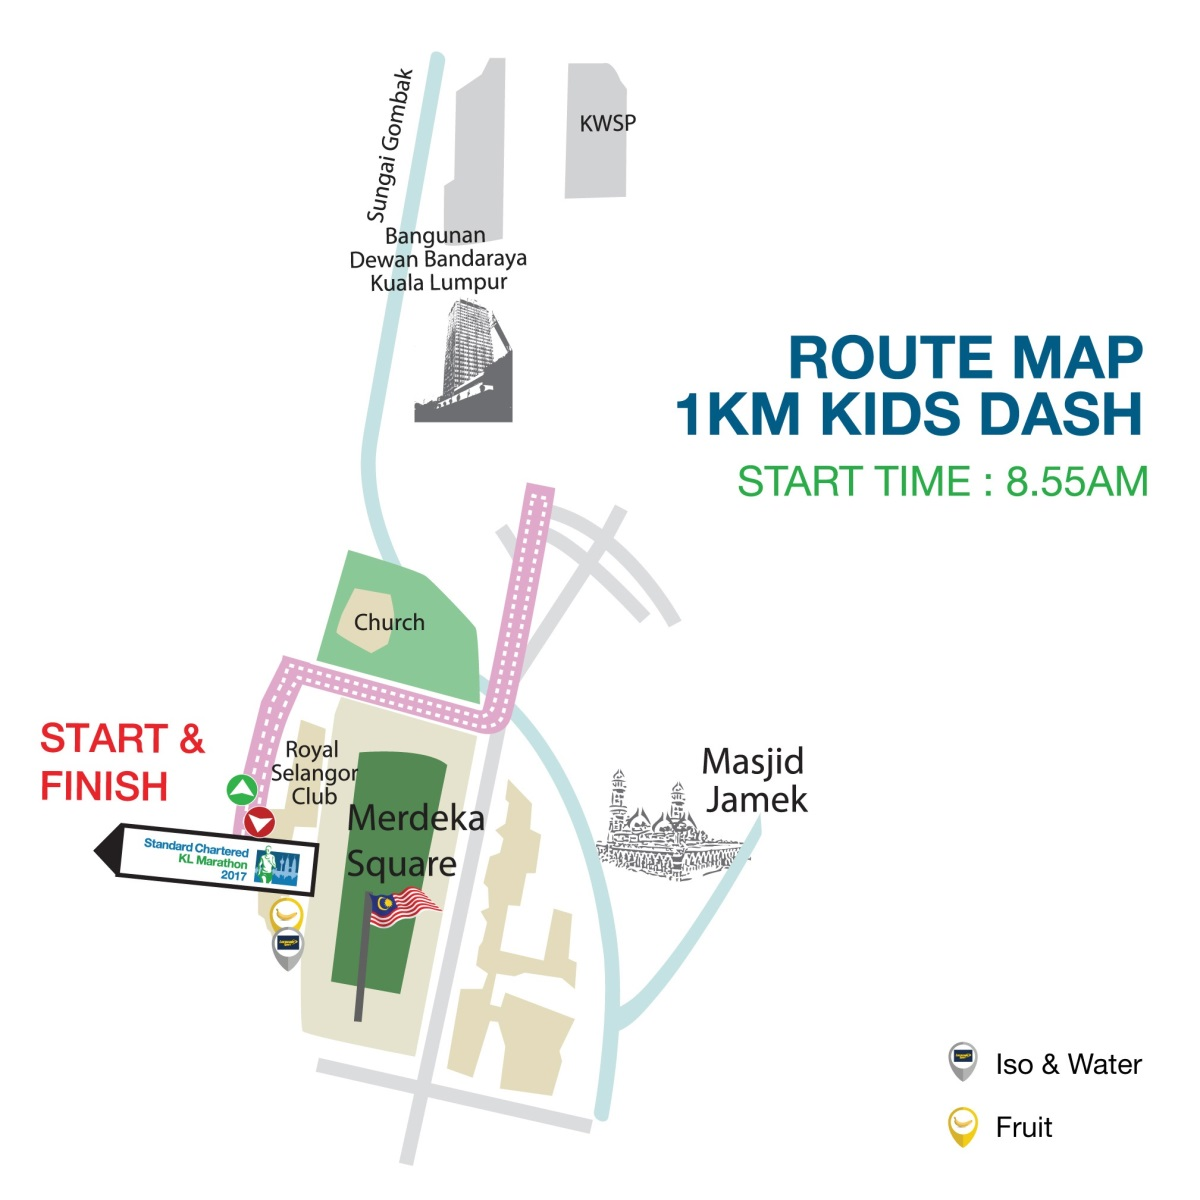 Km Kids Dash